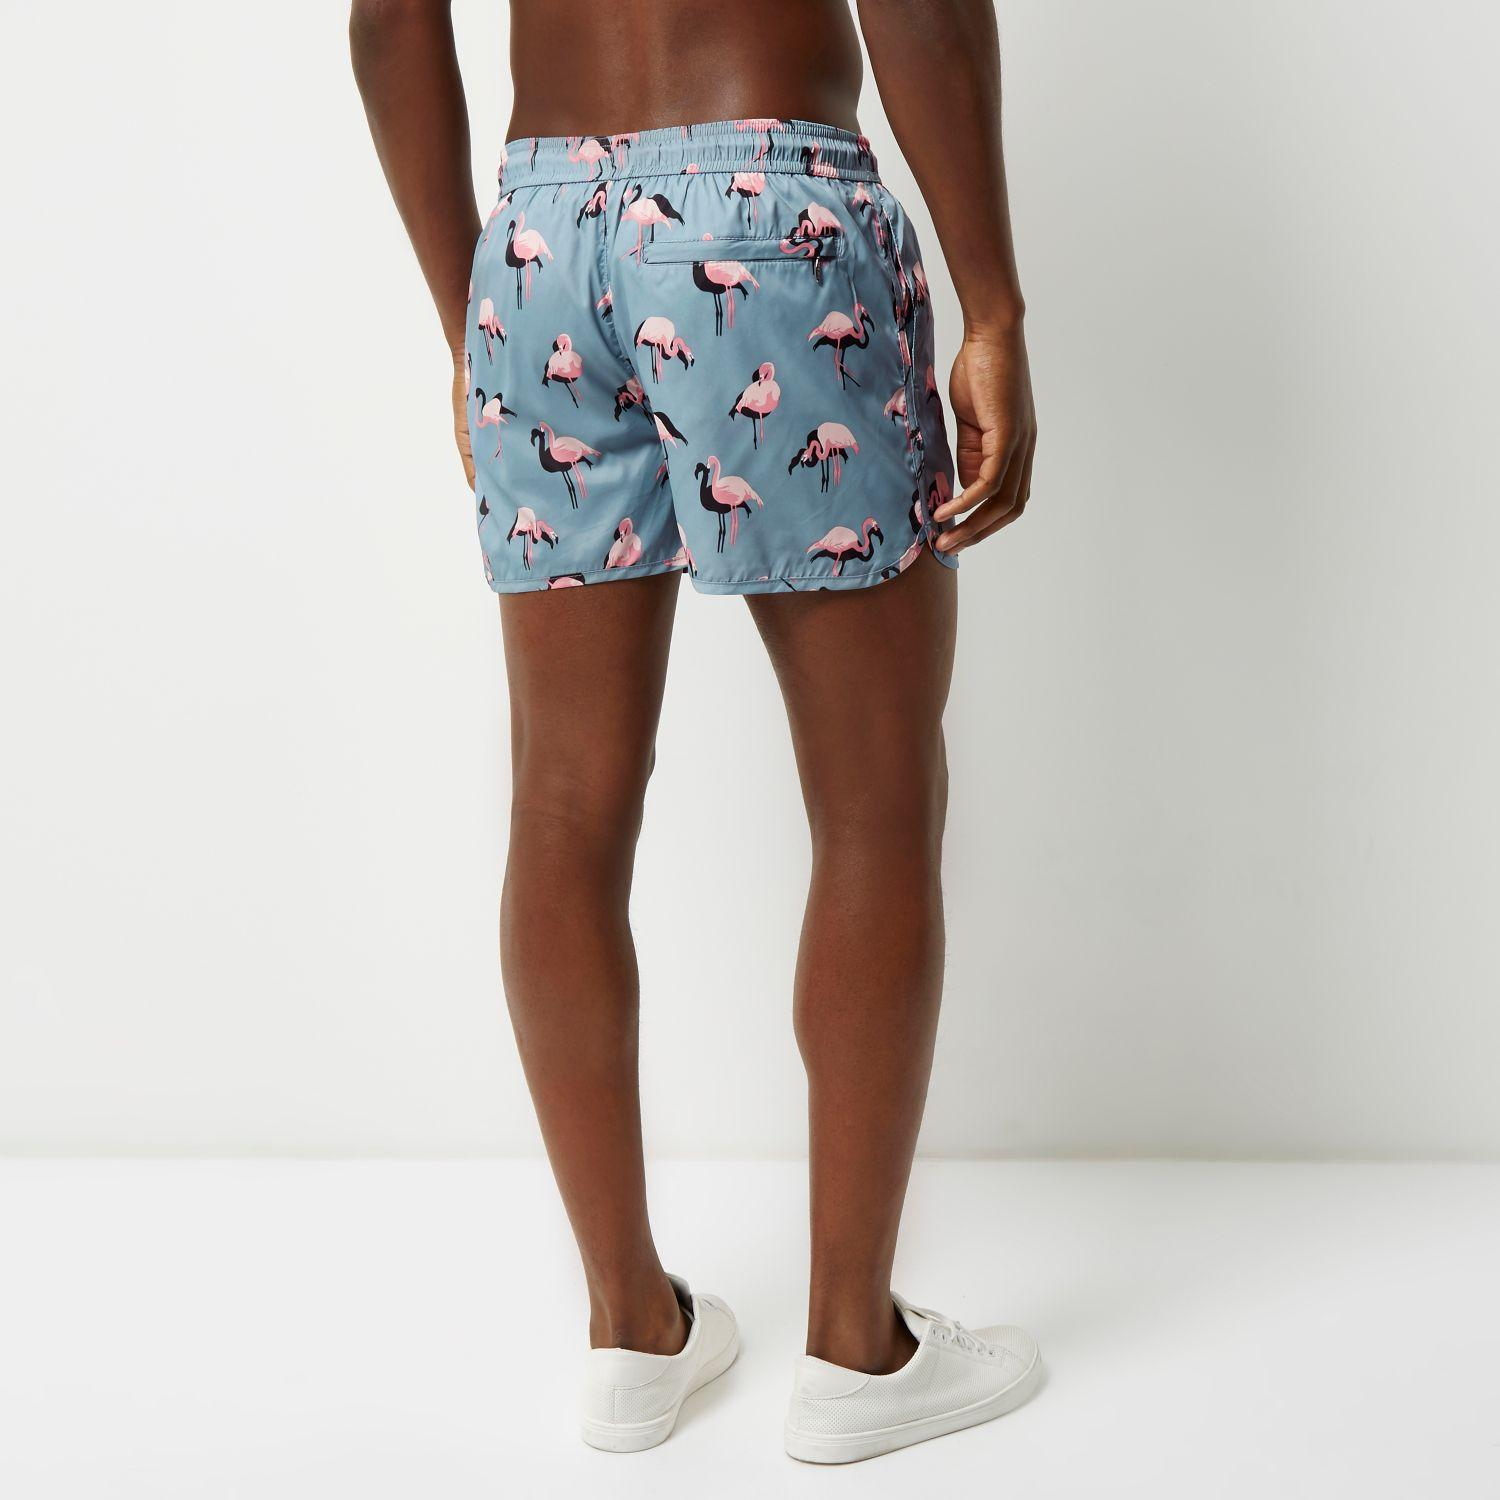 Lyst - River Island Blue Flamingo Print Runner Swim Shorts in Blue for Men